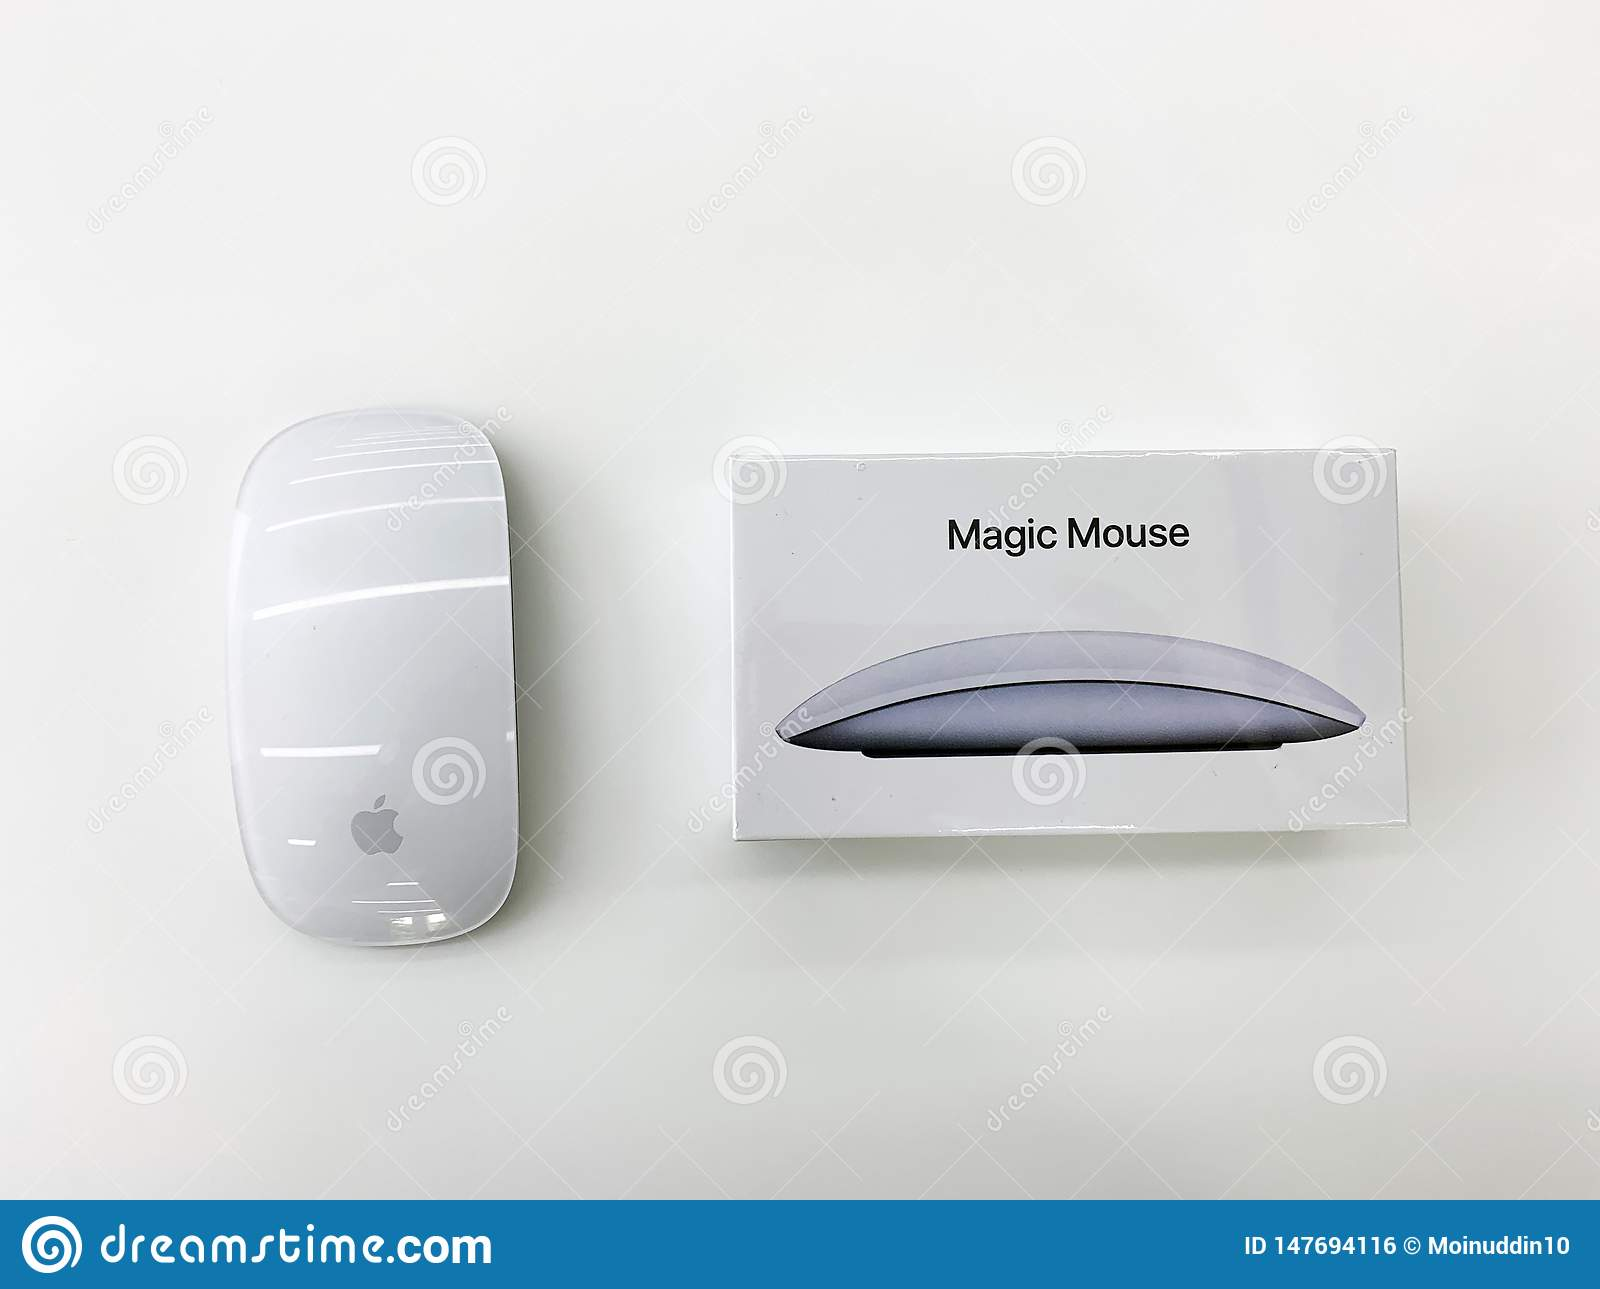 Apple Bluetooth Mouse In White Color - Image Editorial Photo - Image